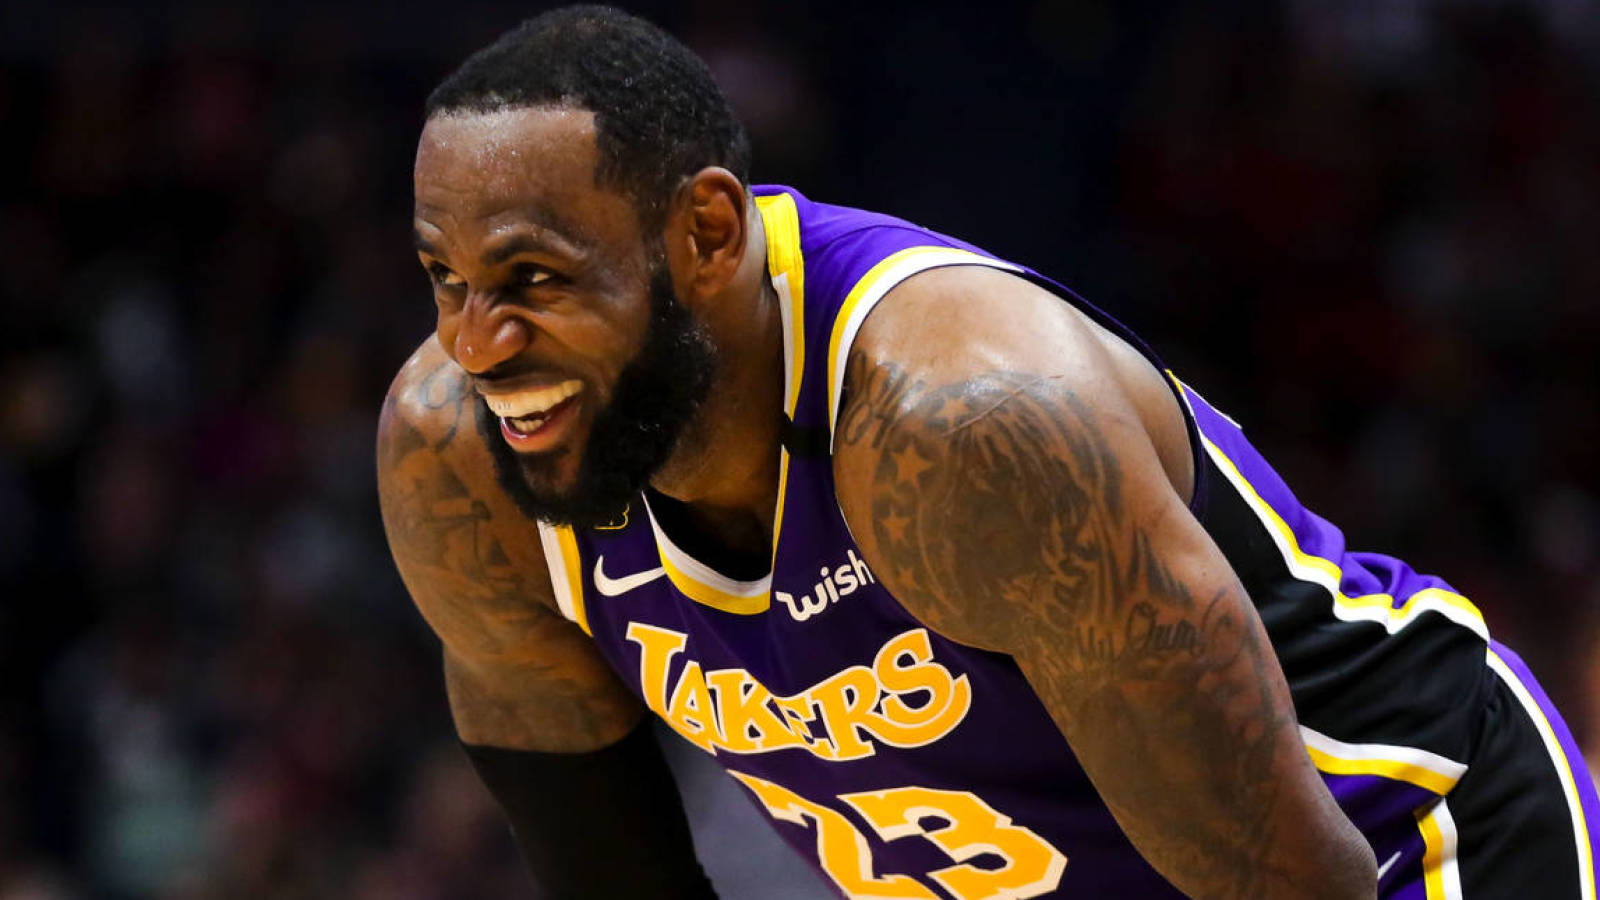 LeBron James has message for those who say he is too friendly with opponents